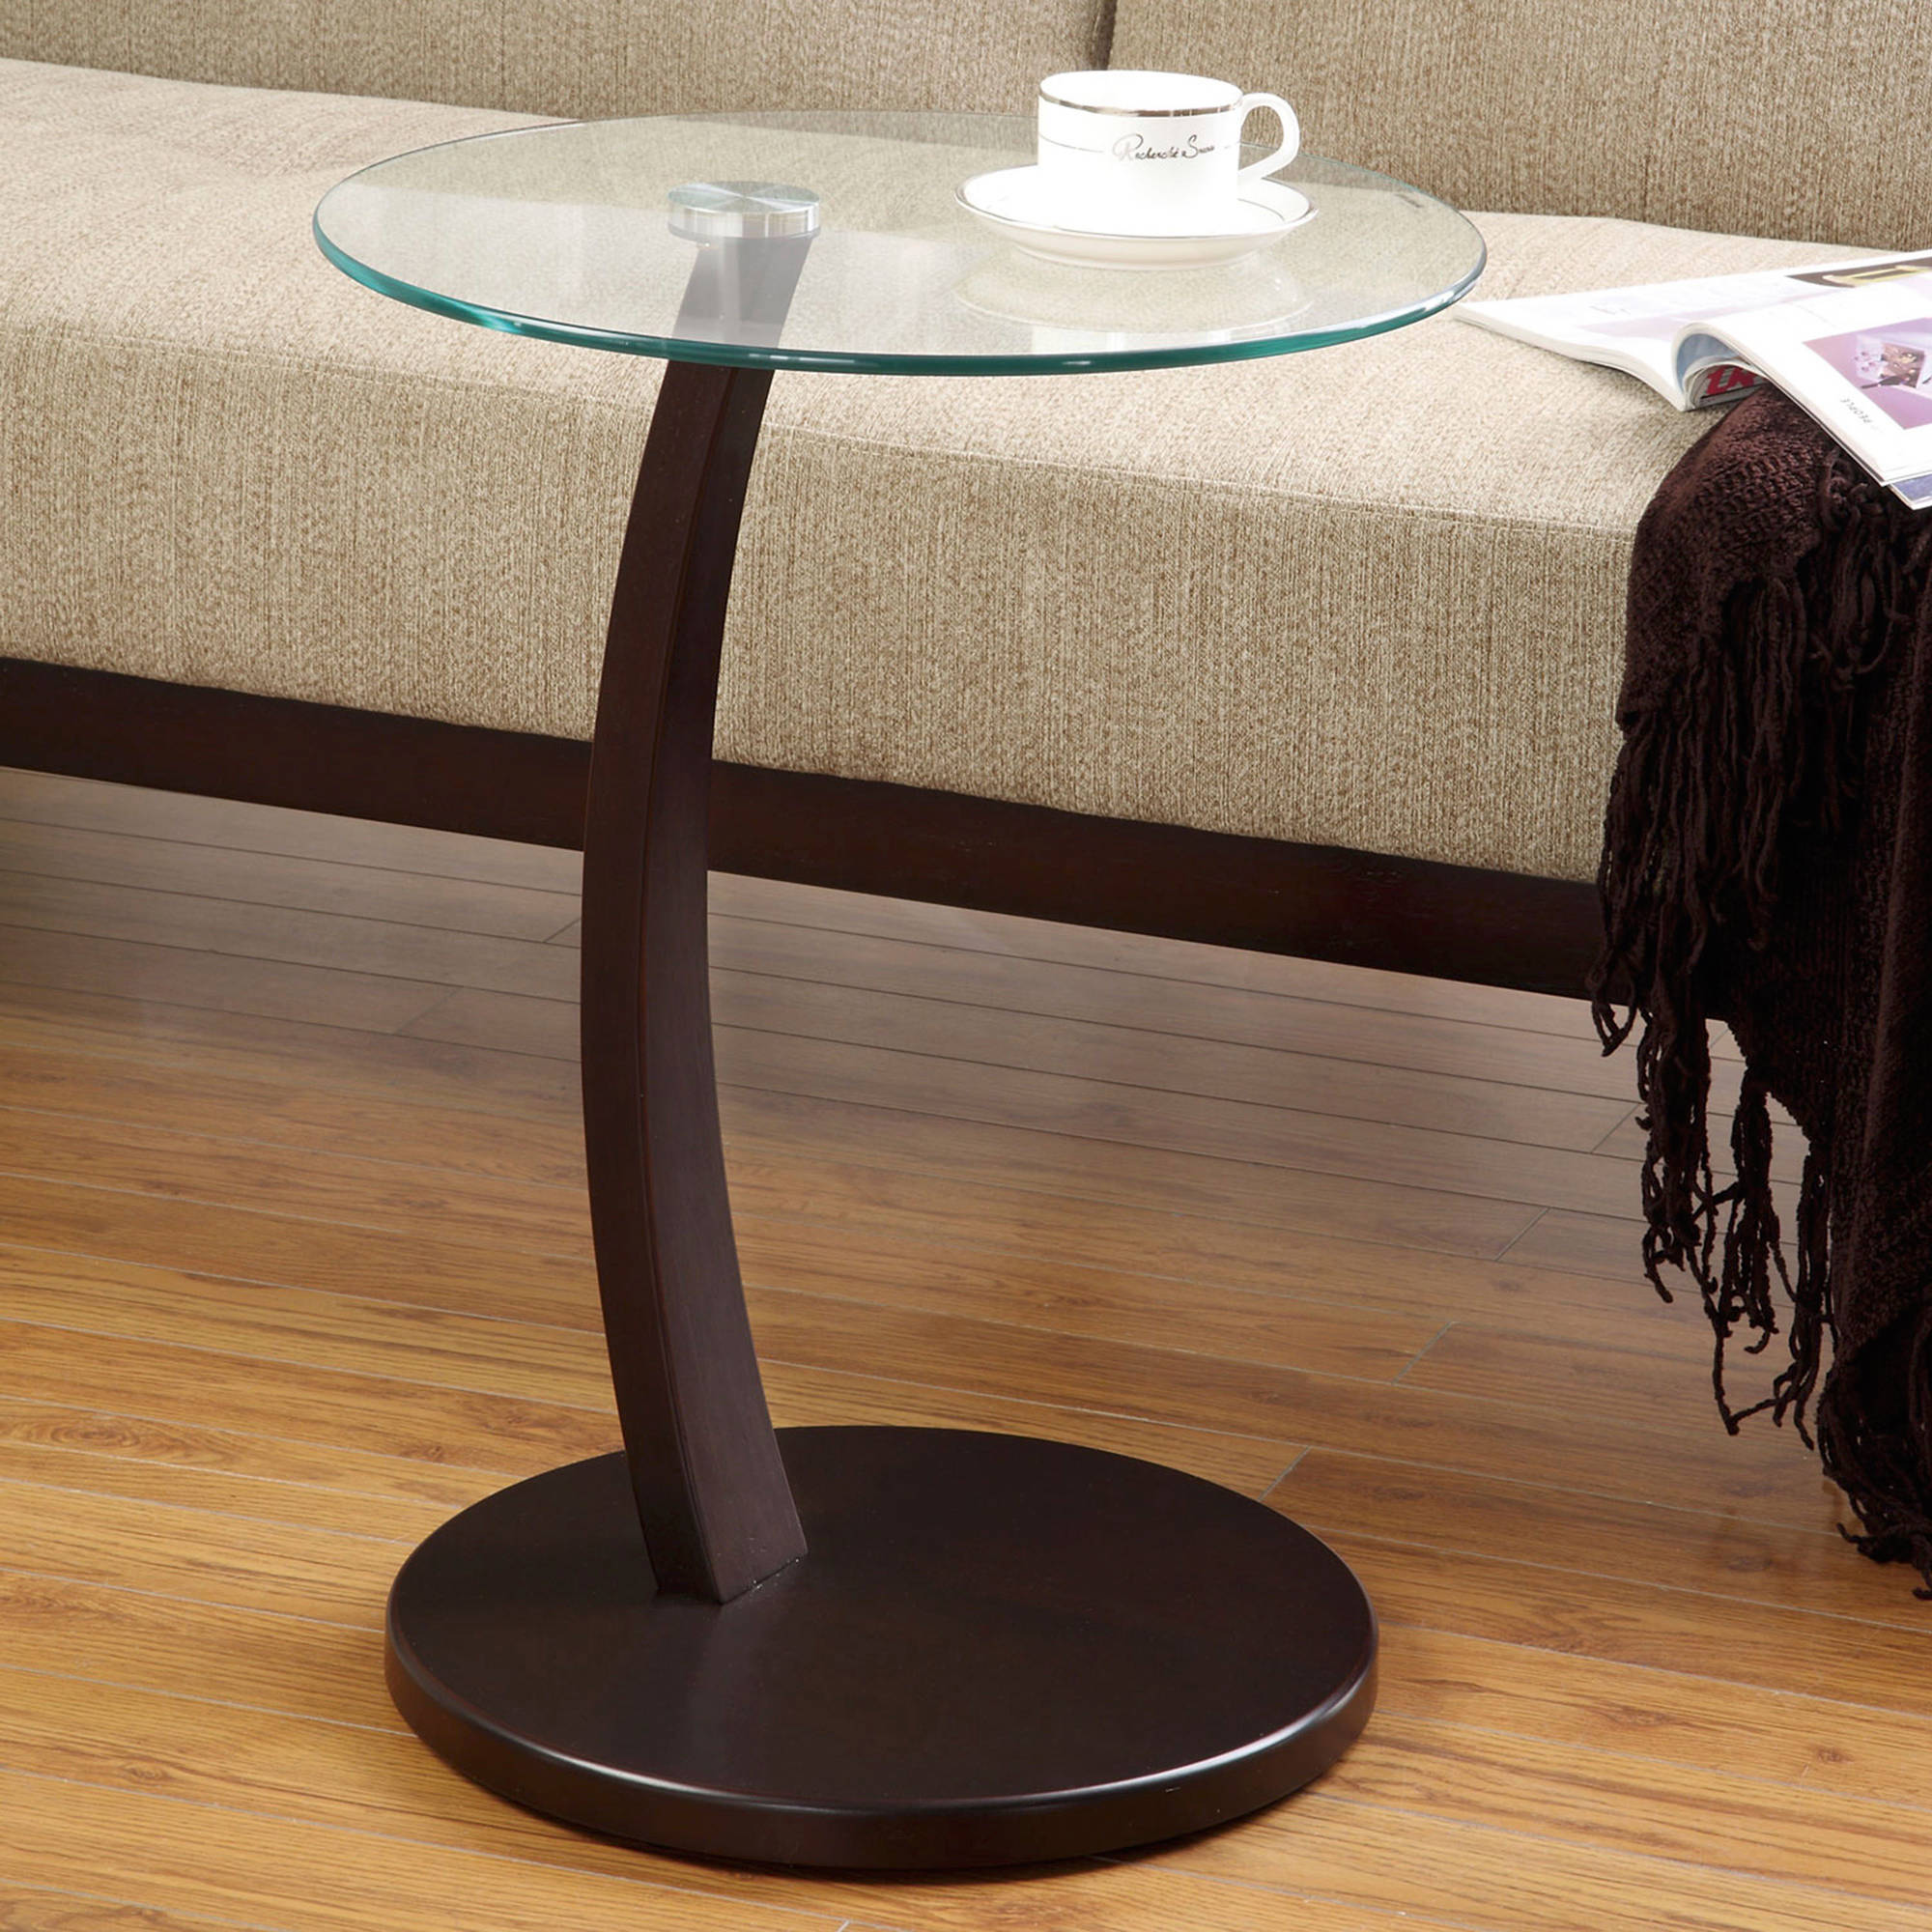 Coaster Round Accent Table, Cappuccino Finish with Glass Top